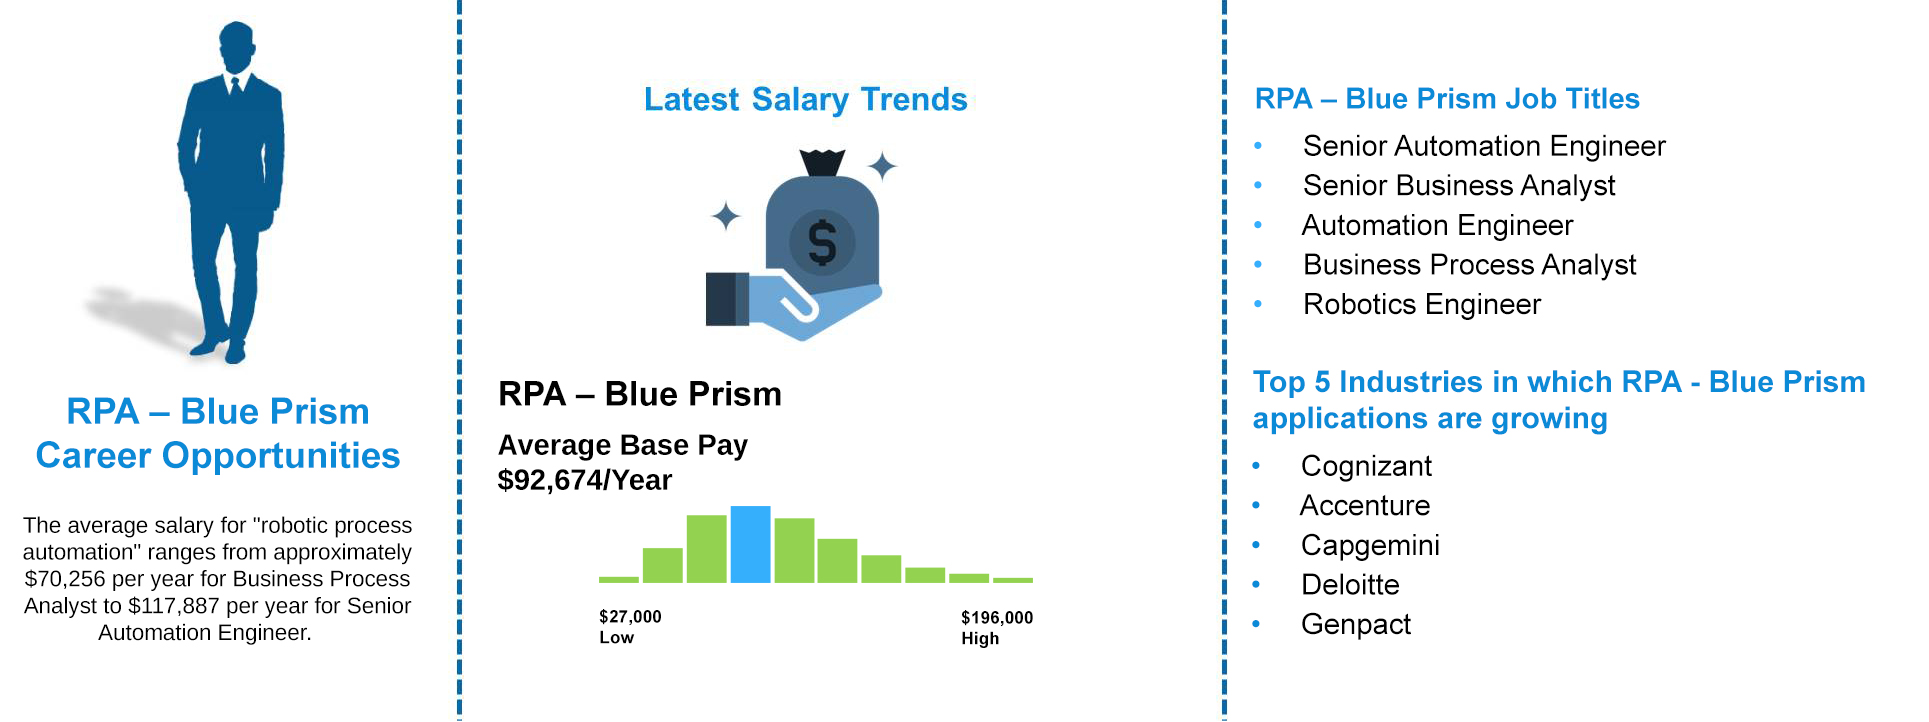 Job Outlooks - RPA Blue Prism